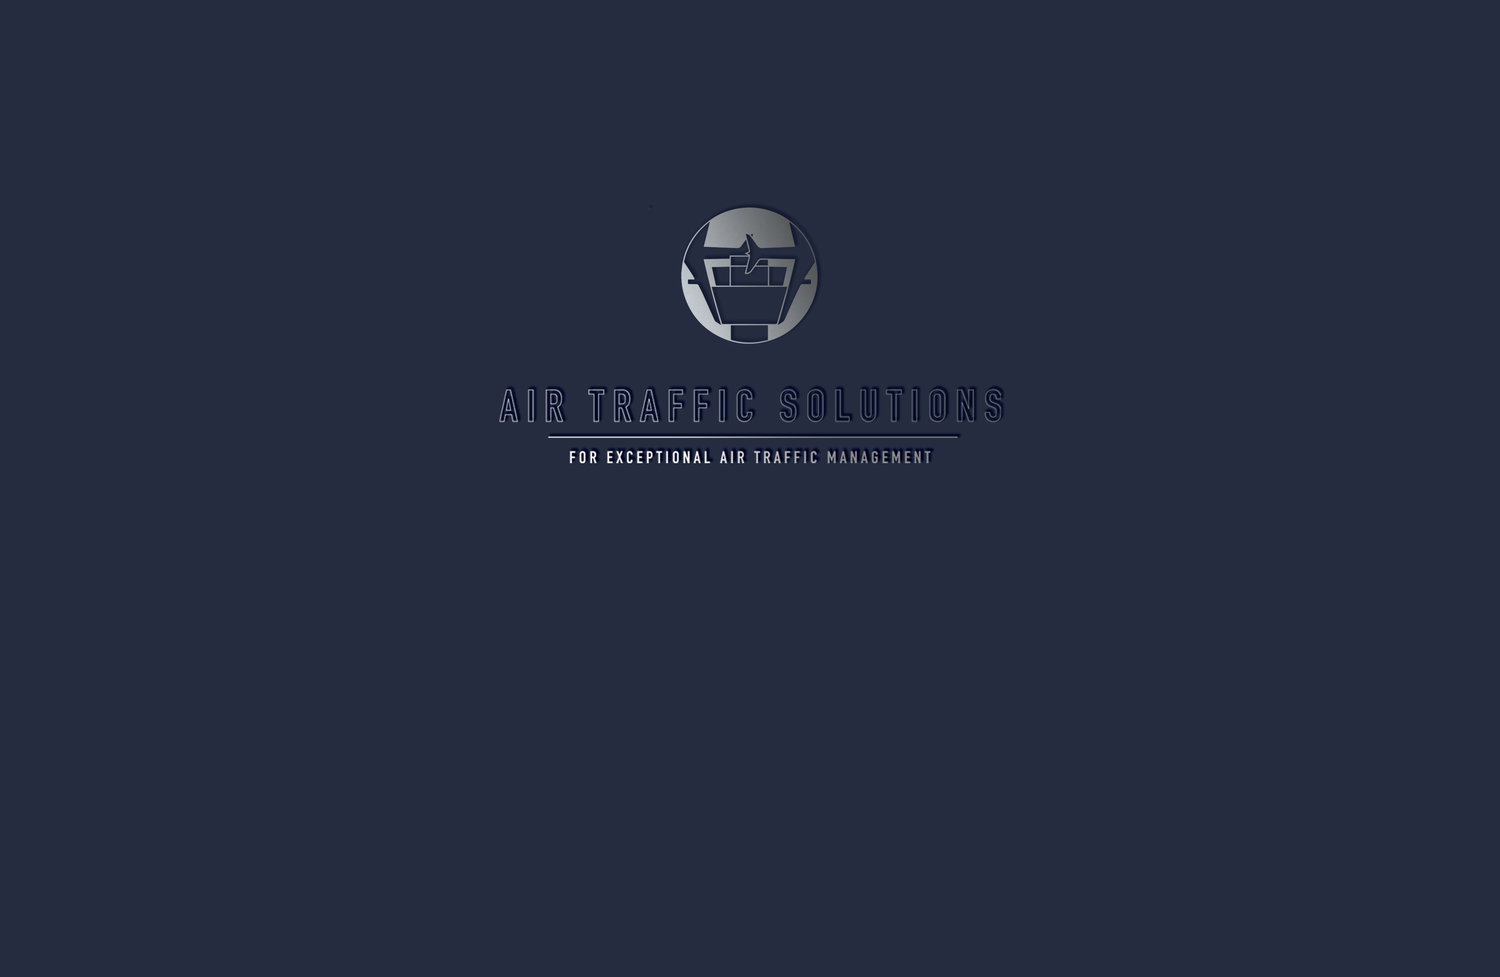 Air Traffic Solutions Banner